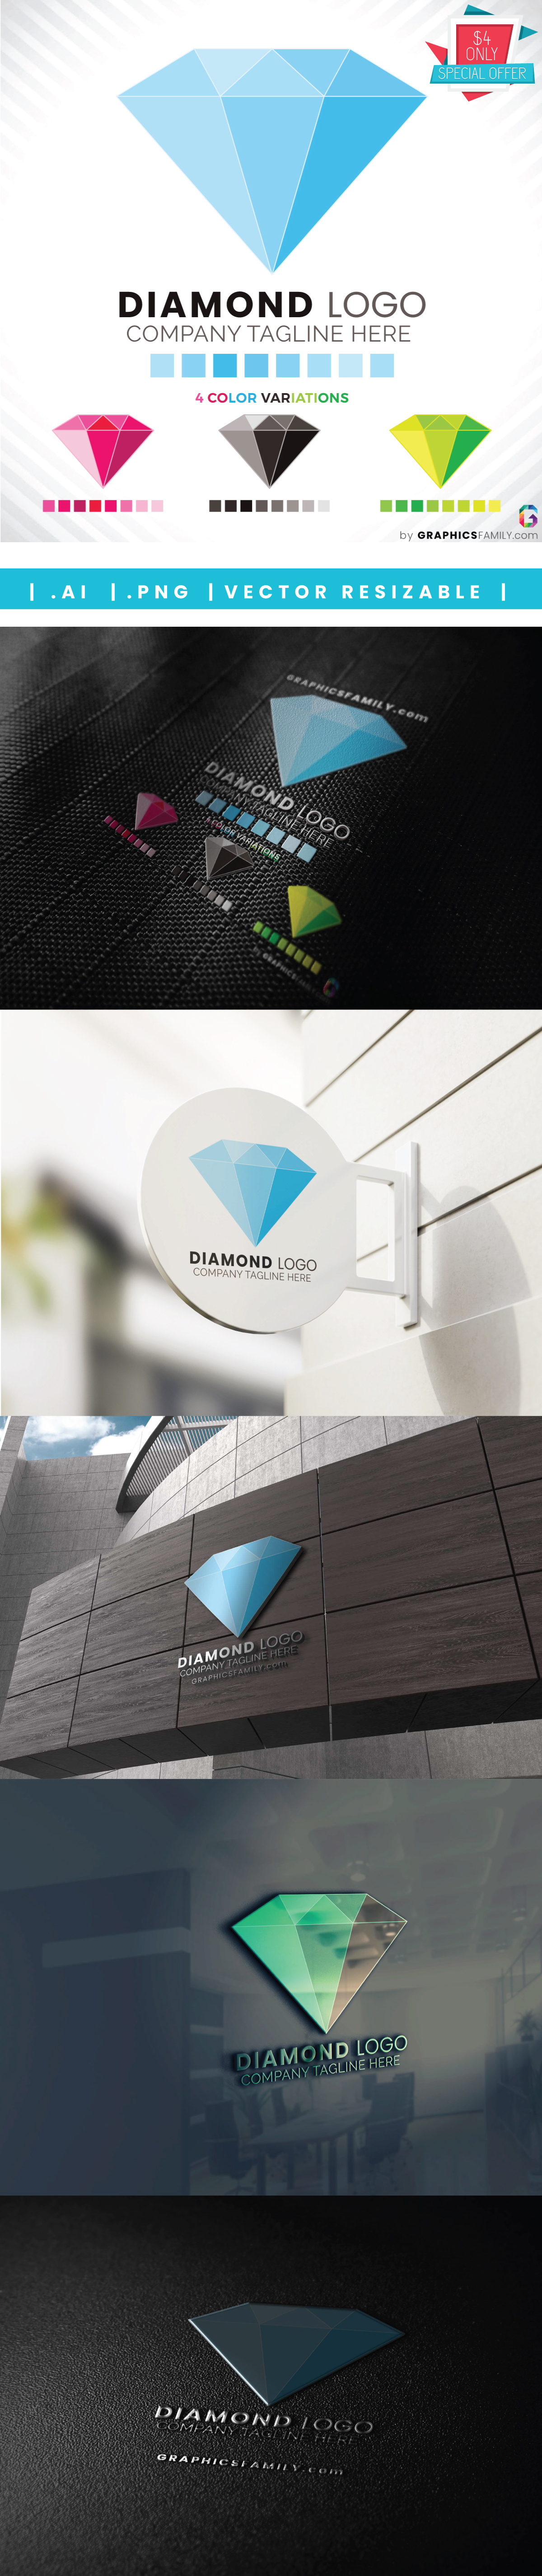 mockup-collection-diamond-logo-template